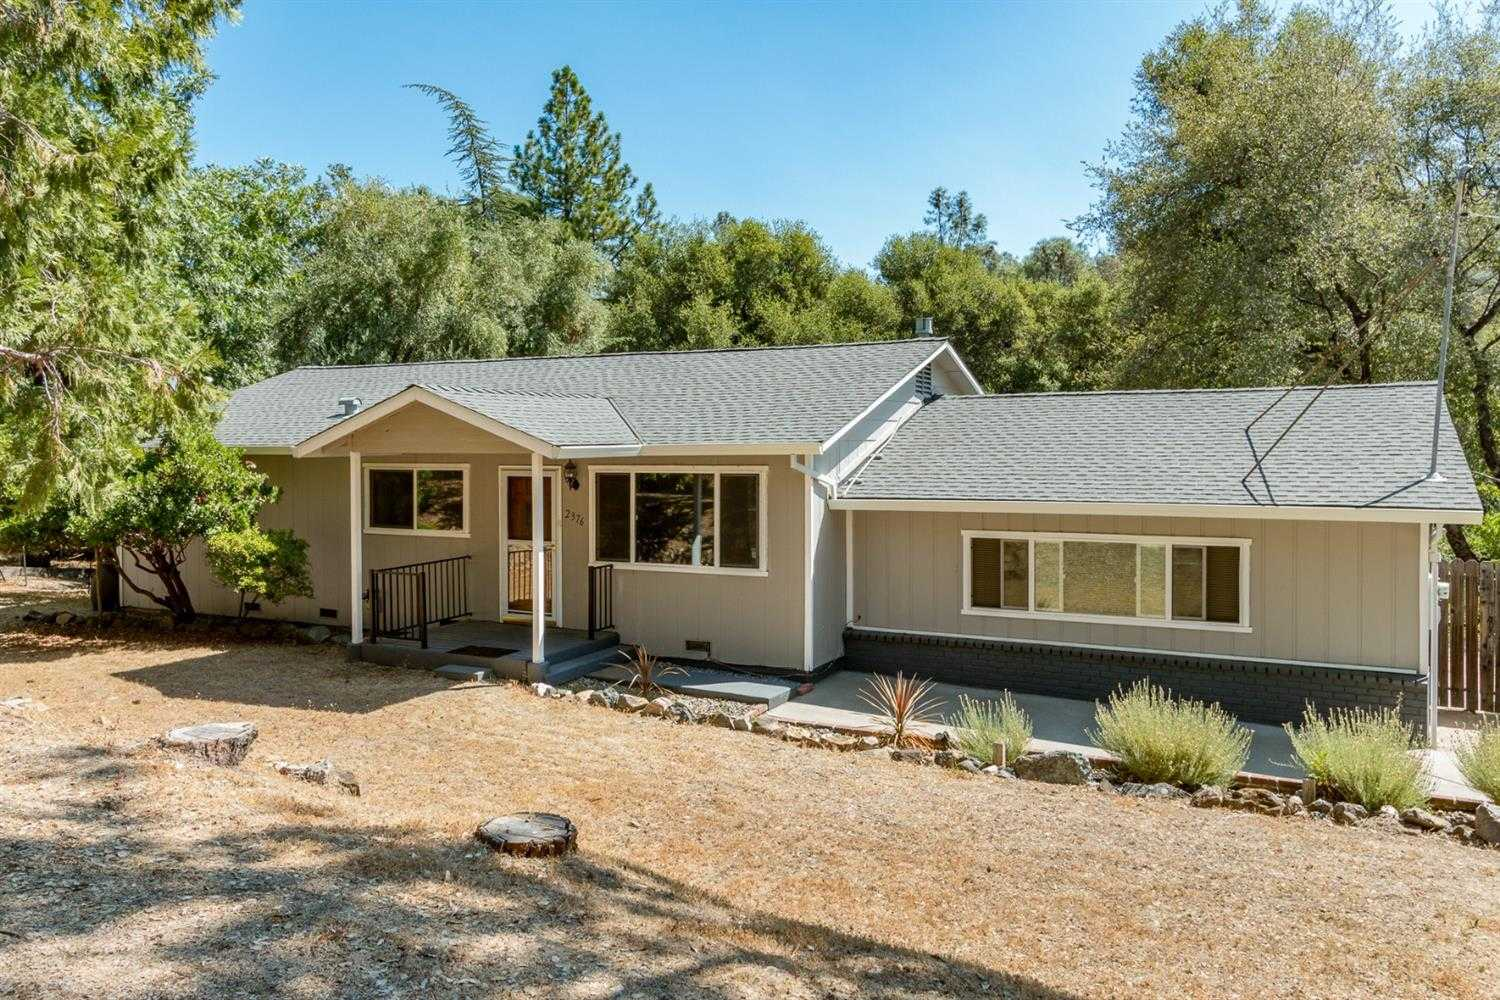 $379,900 - 3Br/3Ba -  for Sale in Placerville